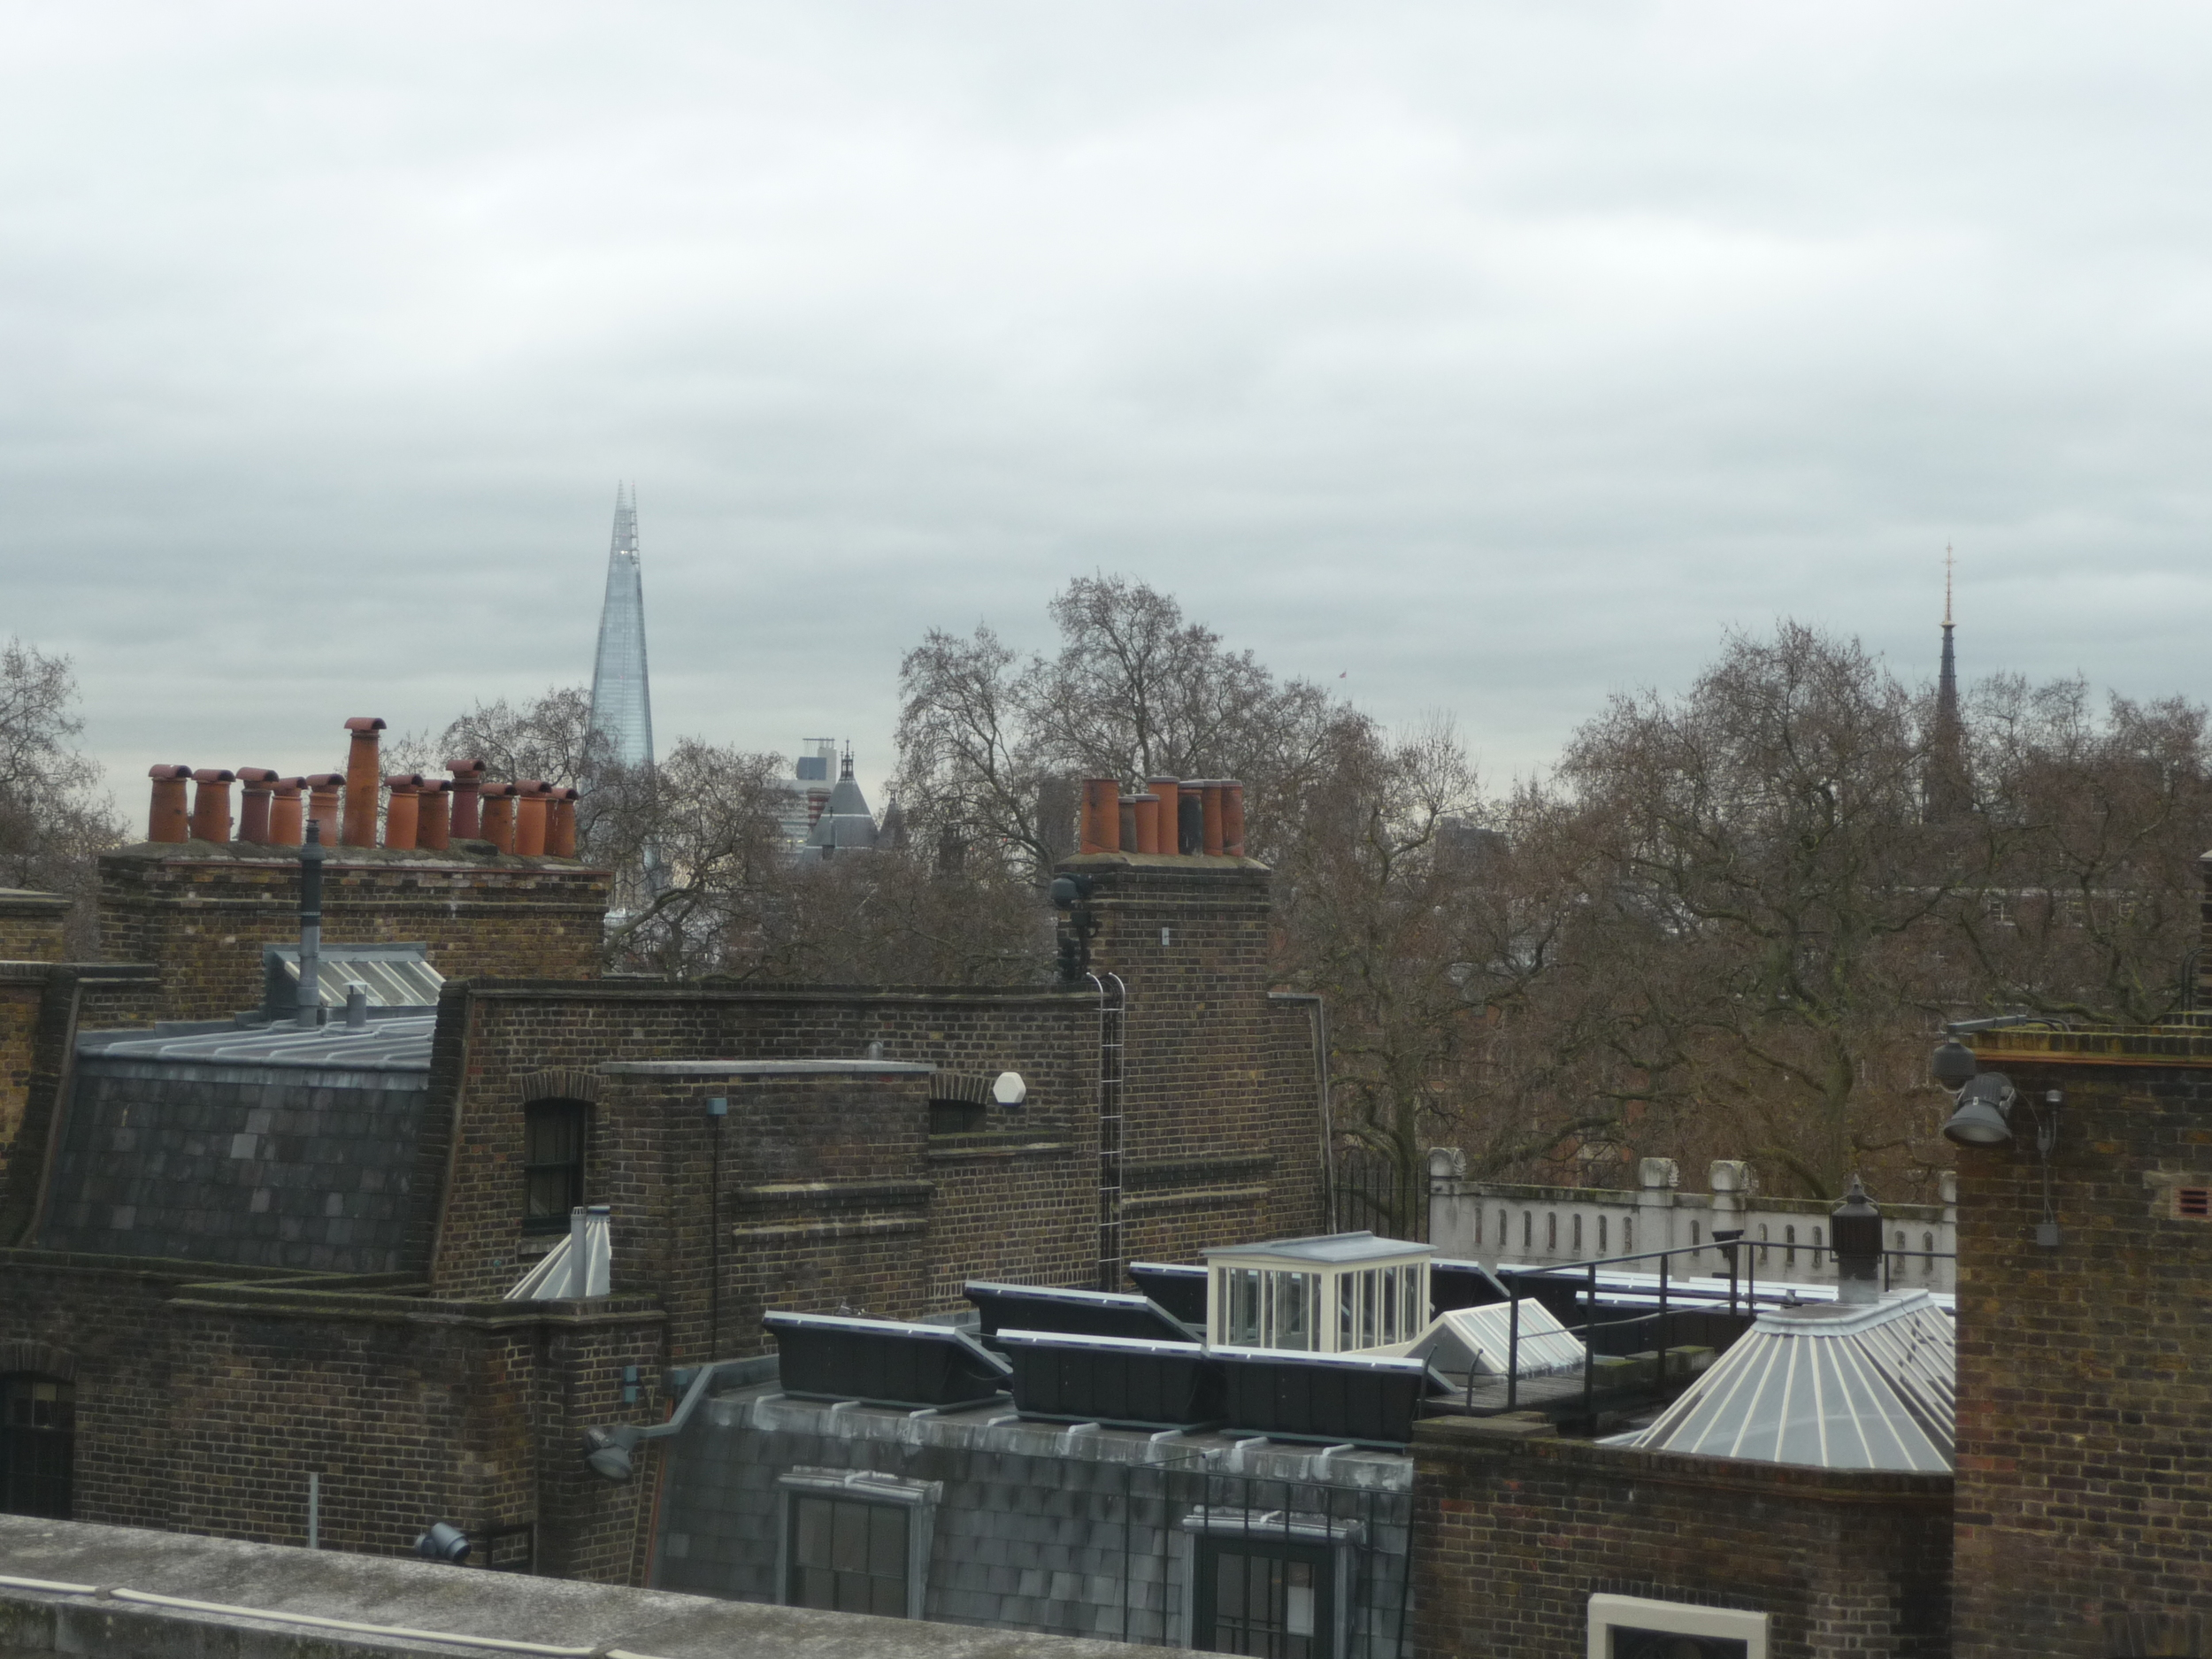 View from my hotel window with The Shard in the distance